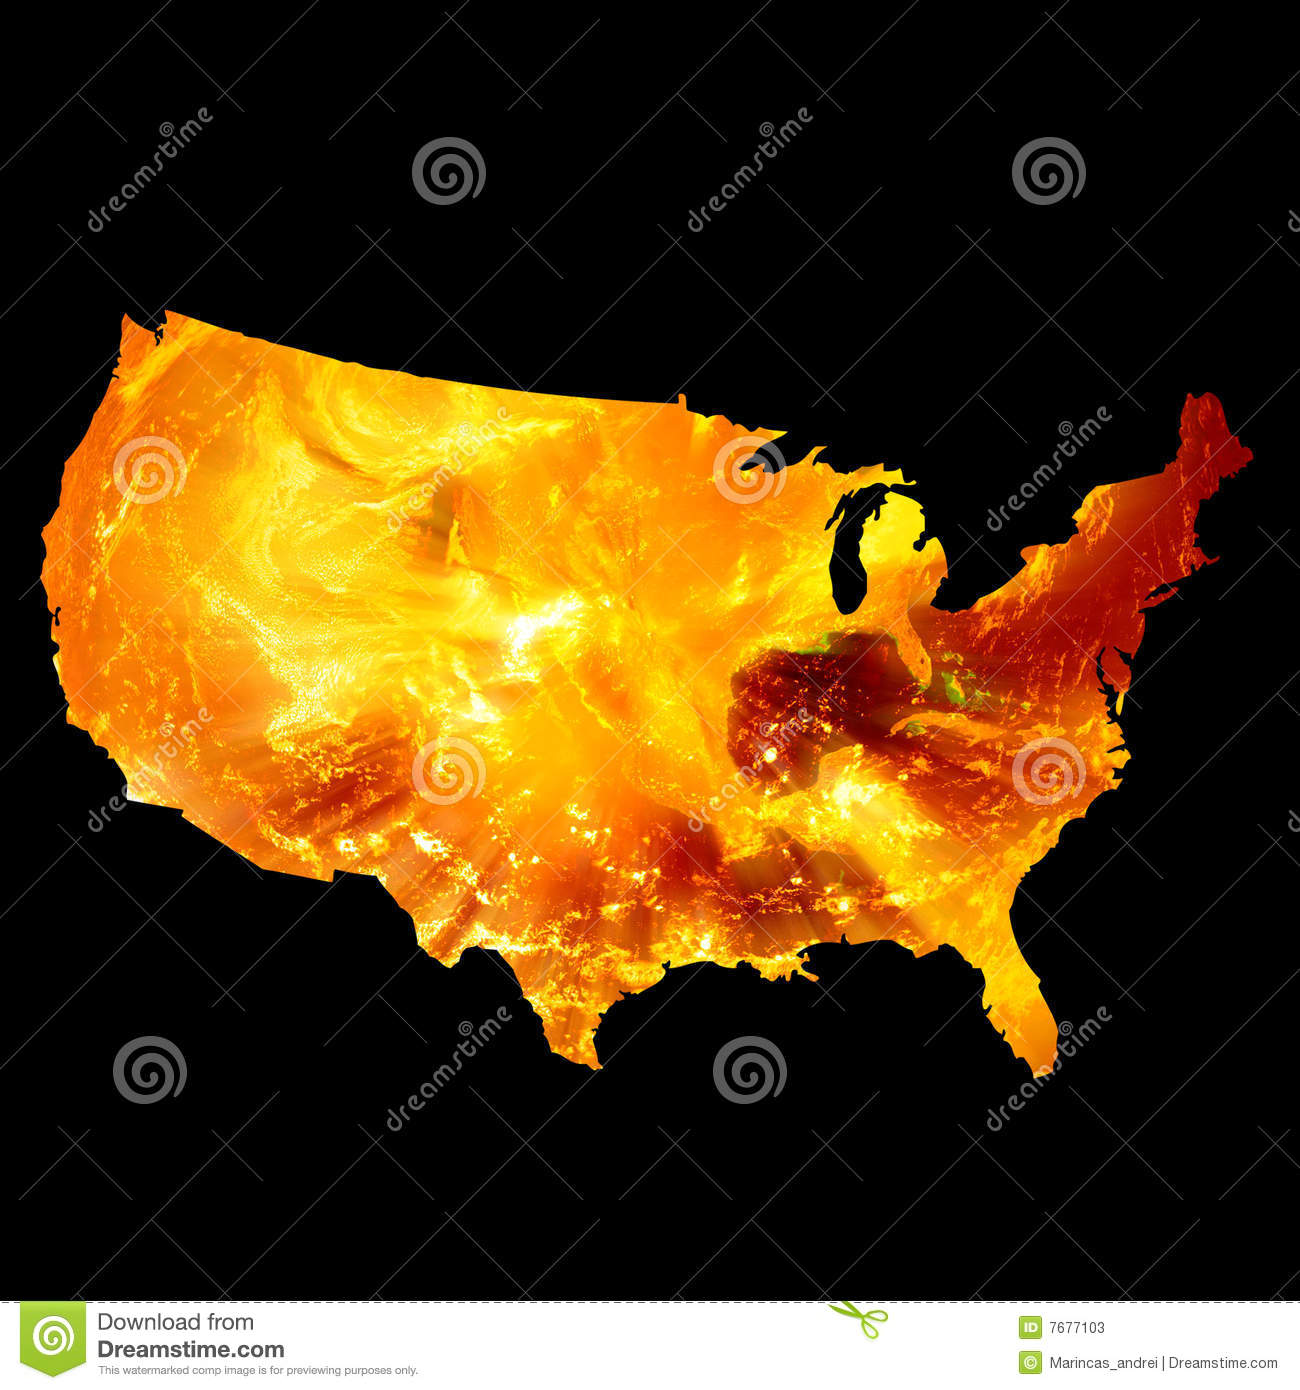 American map on fire stock illustration. Illustration of nuclear